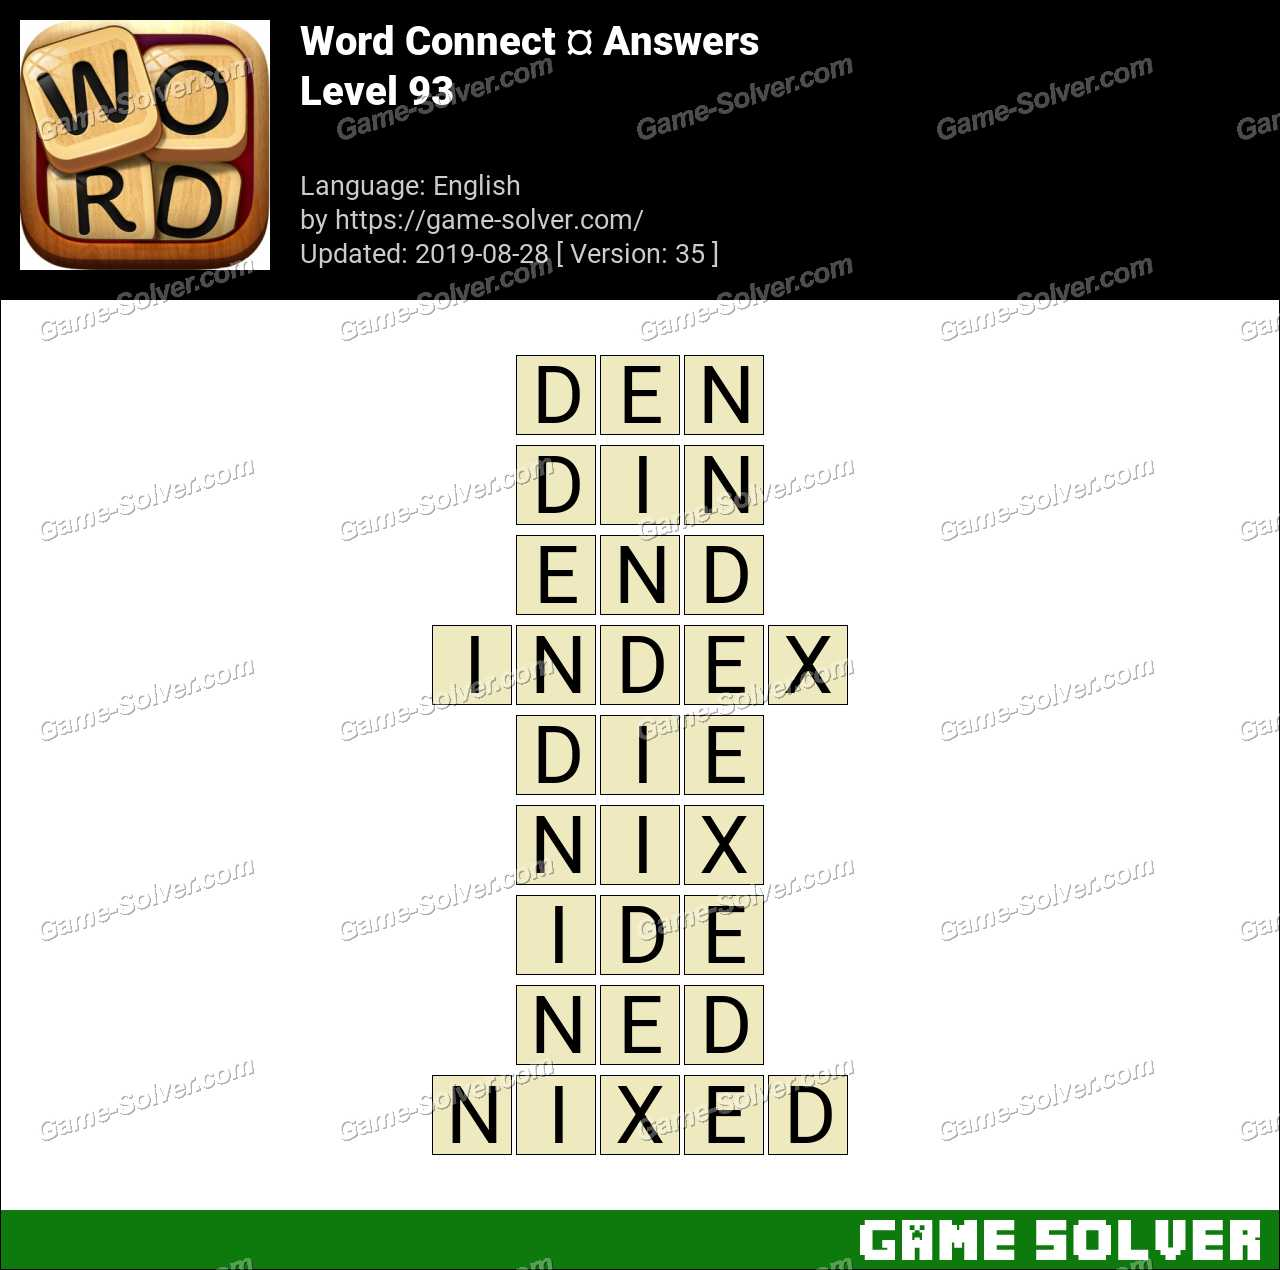 Word Connect Level 93 Answers